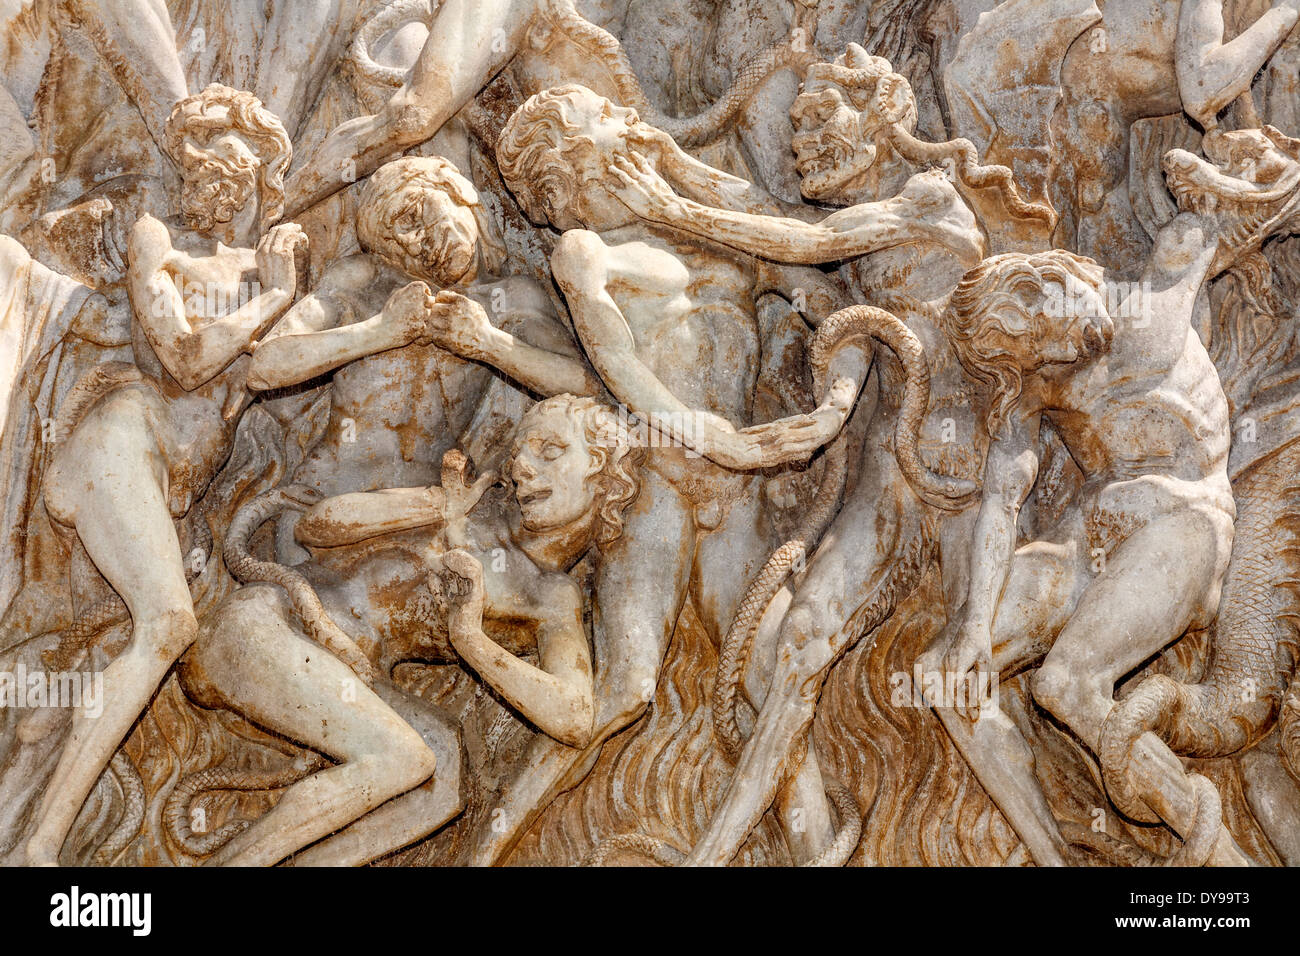 Bas Relief (The Last judgement ) On The Facade of The Duomo, Orvieto, Italy - Stock Image